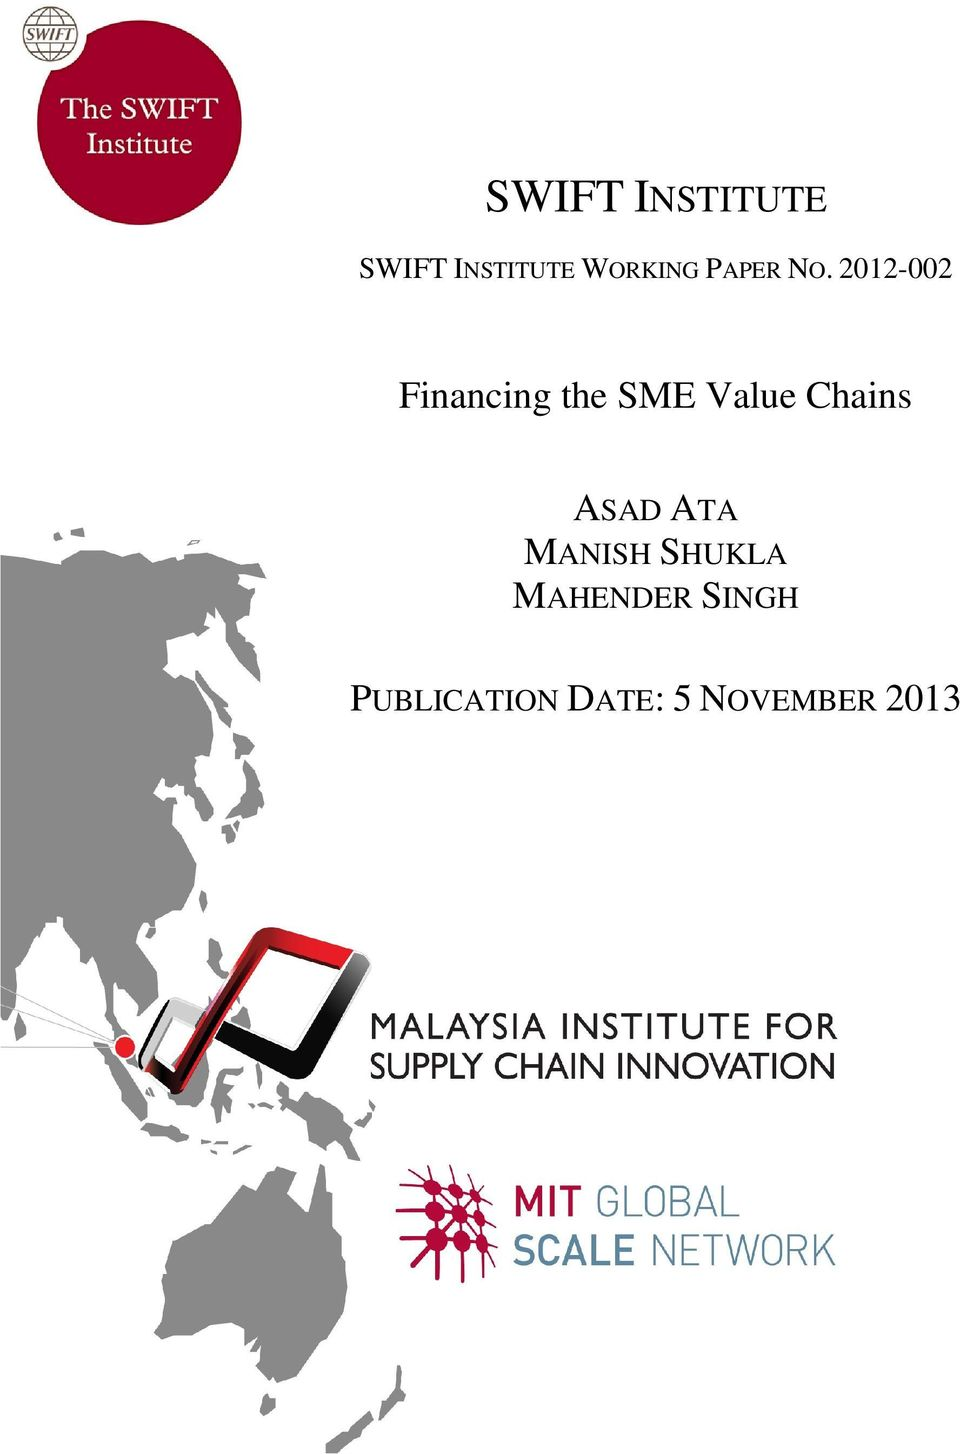 2012-002 Financing the SME Value Chains